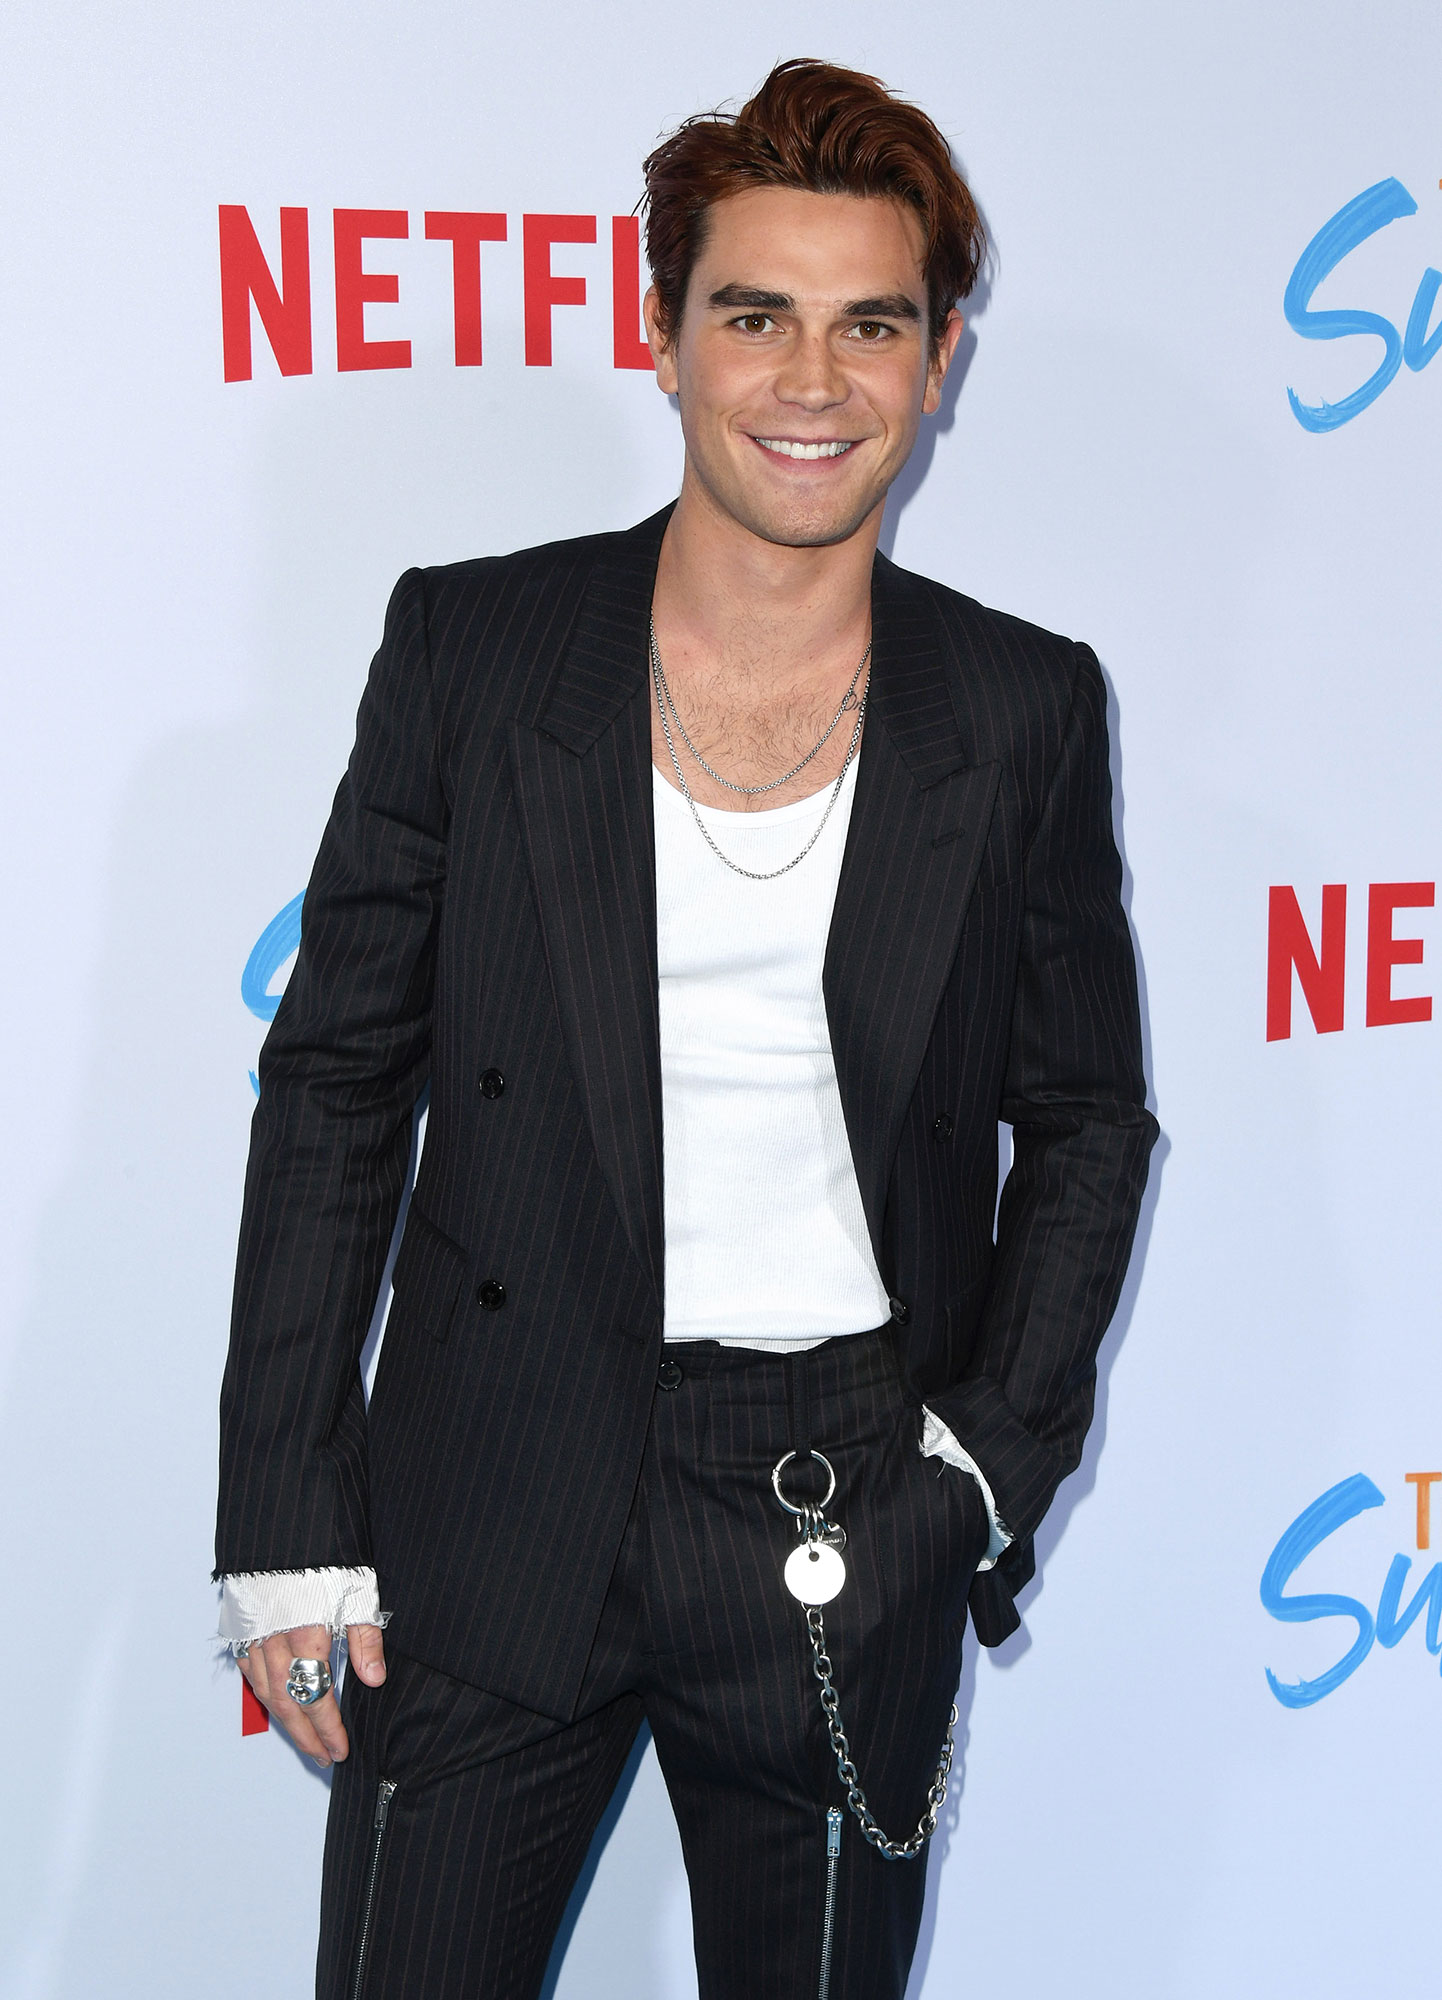 """KJ Apa on Mentor Luke Perry - KJ Apa attends the Special Screening Of Netflix's """"The Last Summer"""" at TCL Chinese Theatre on April 29, 2019 in Hollywood, Calif."""